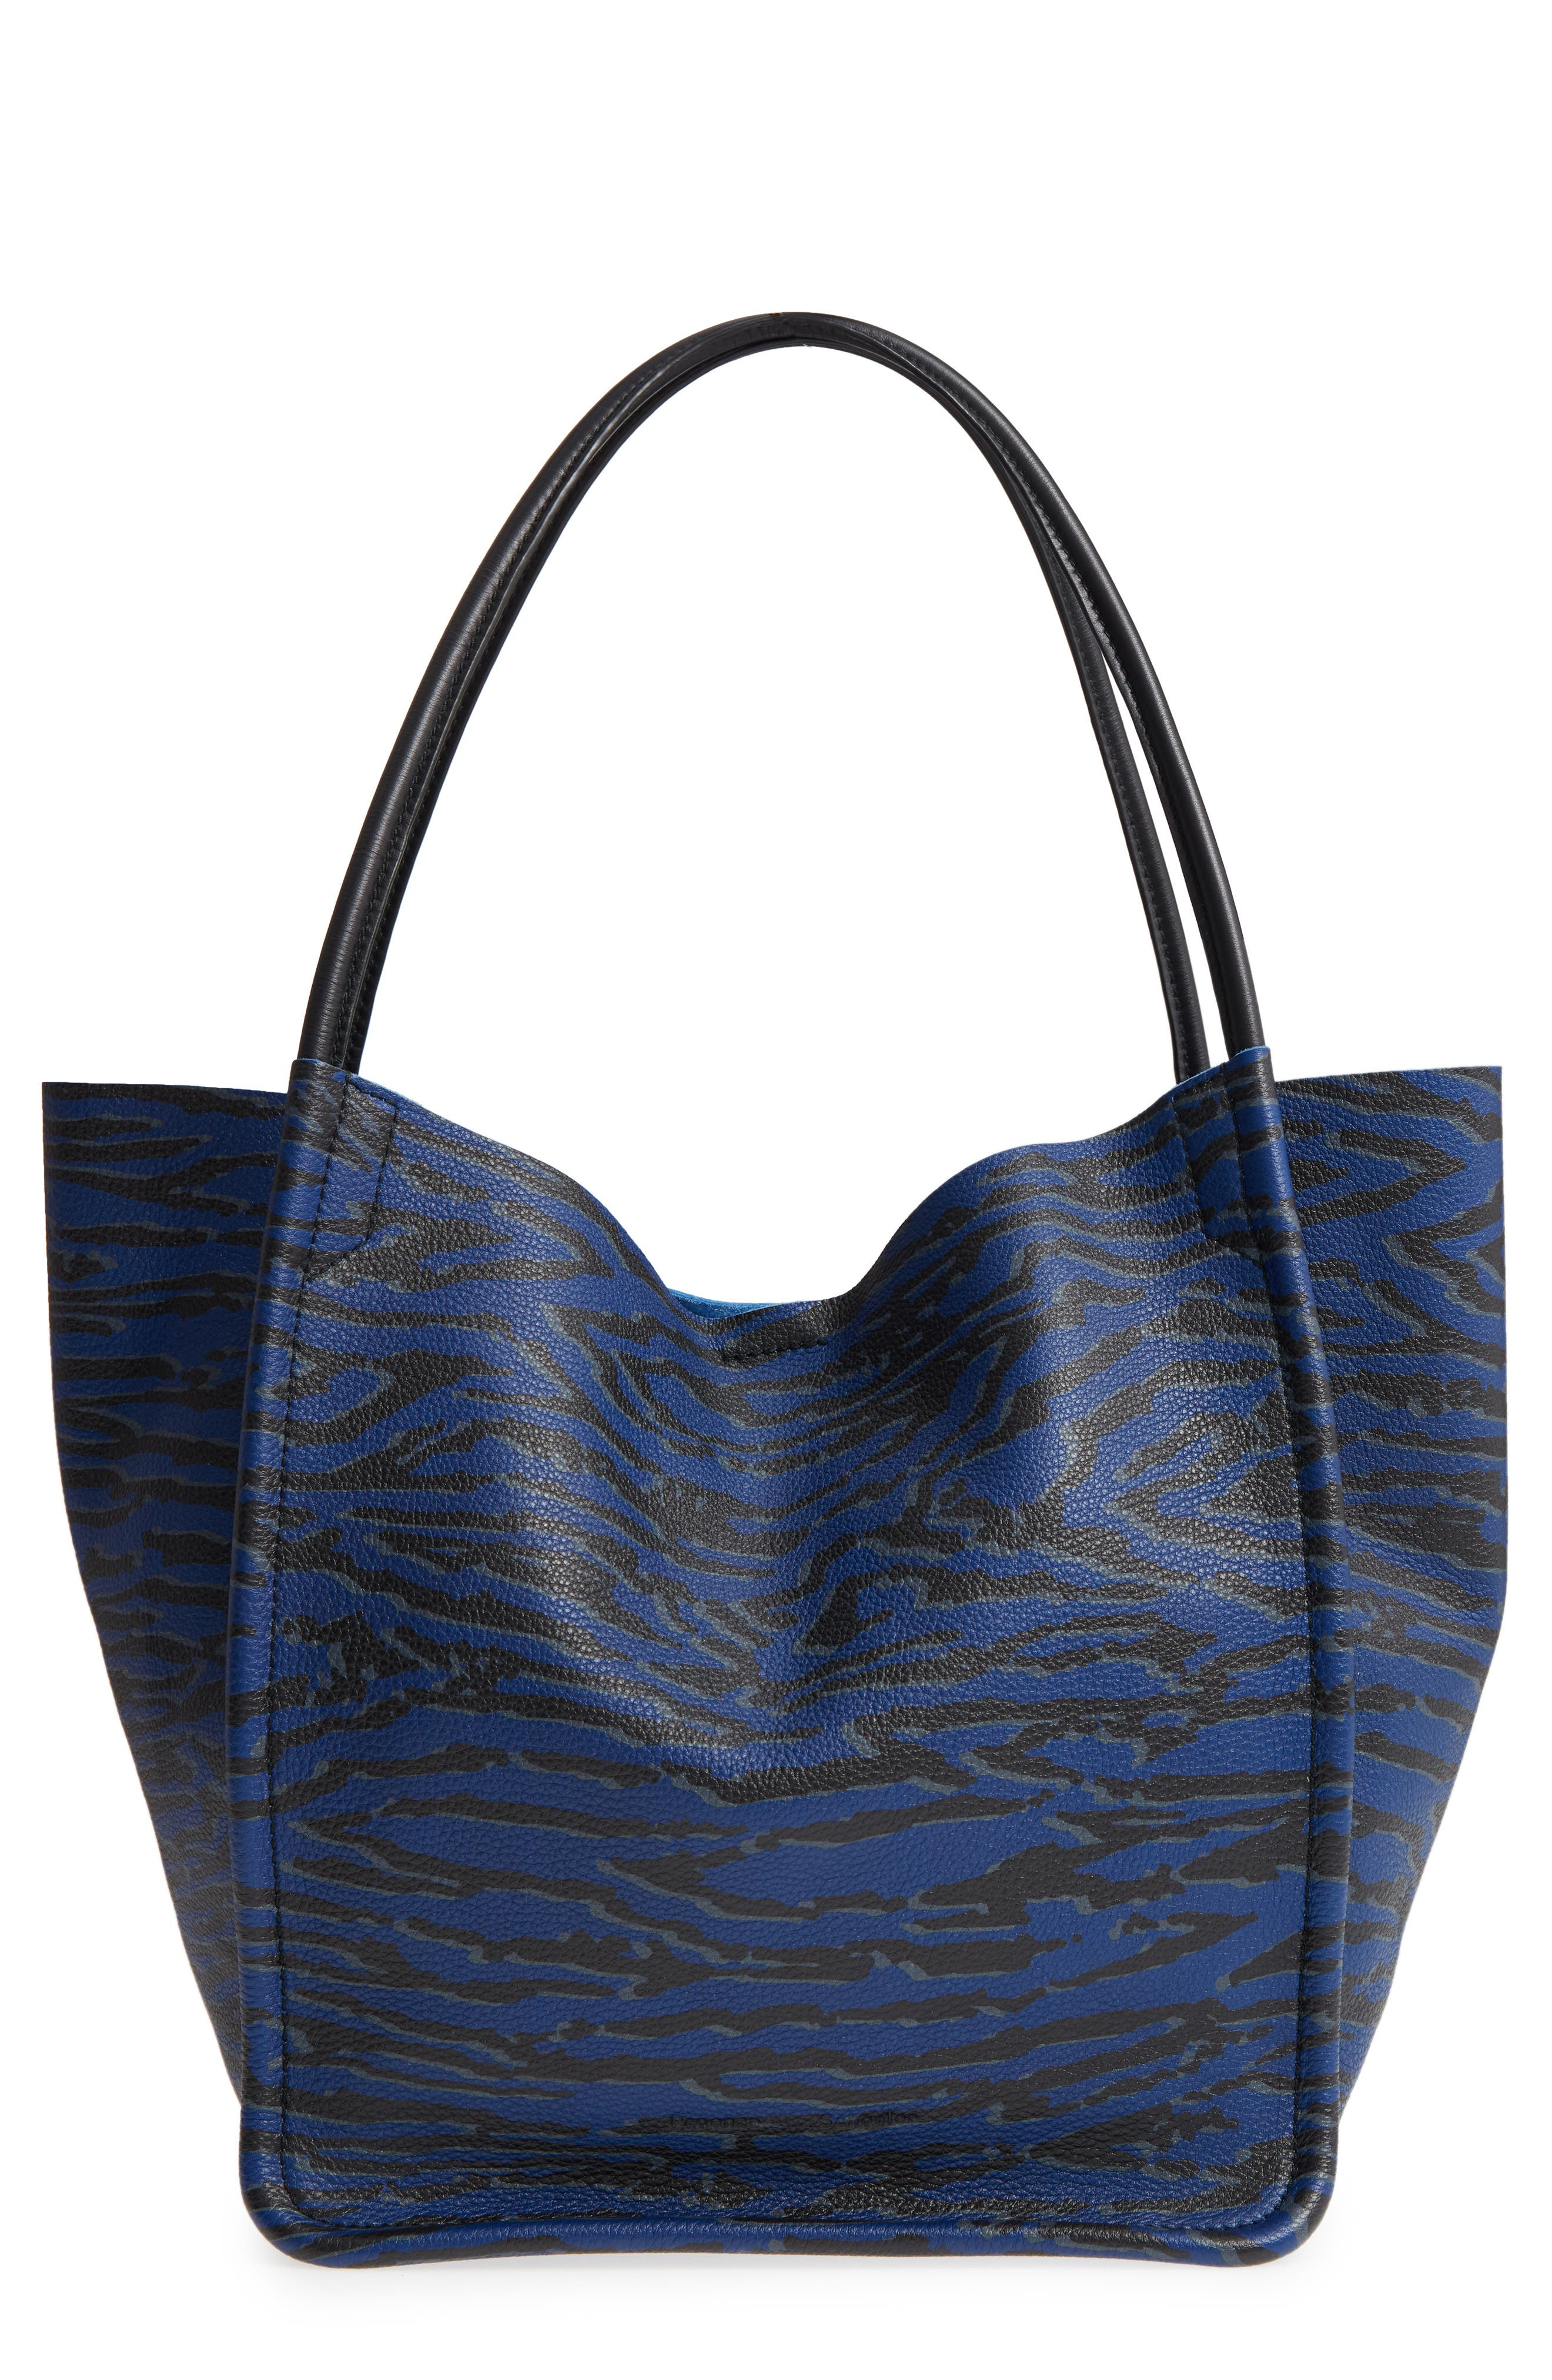 LARGE CALFSKIN LEATHER TOTE - BLUE